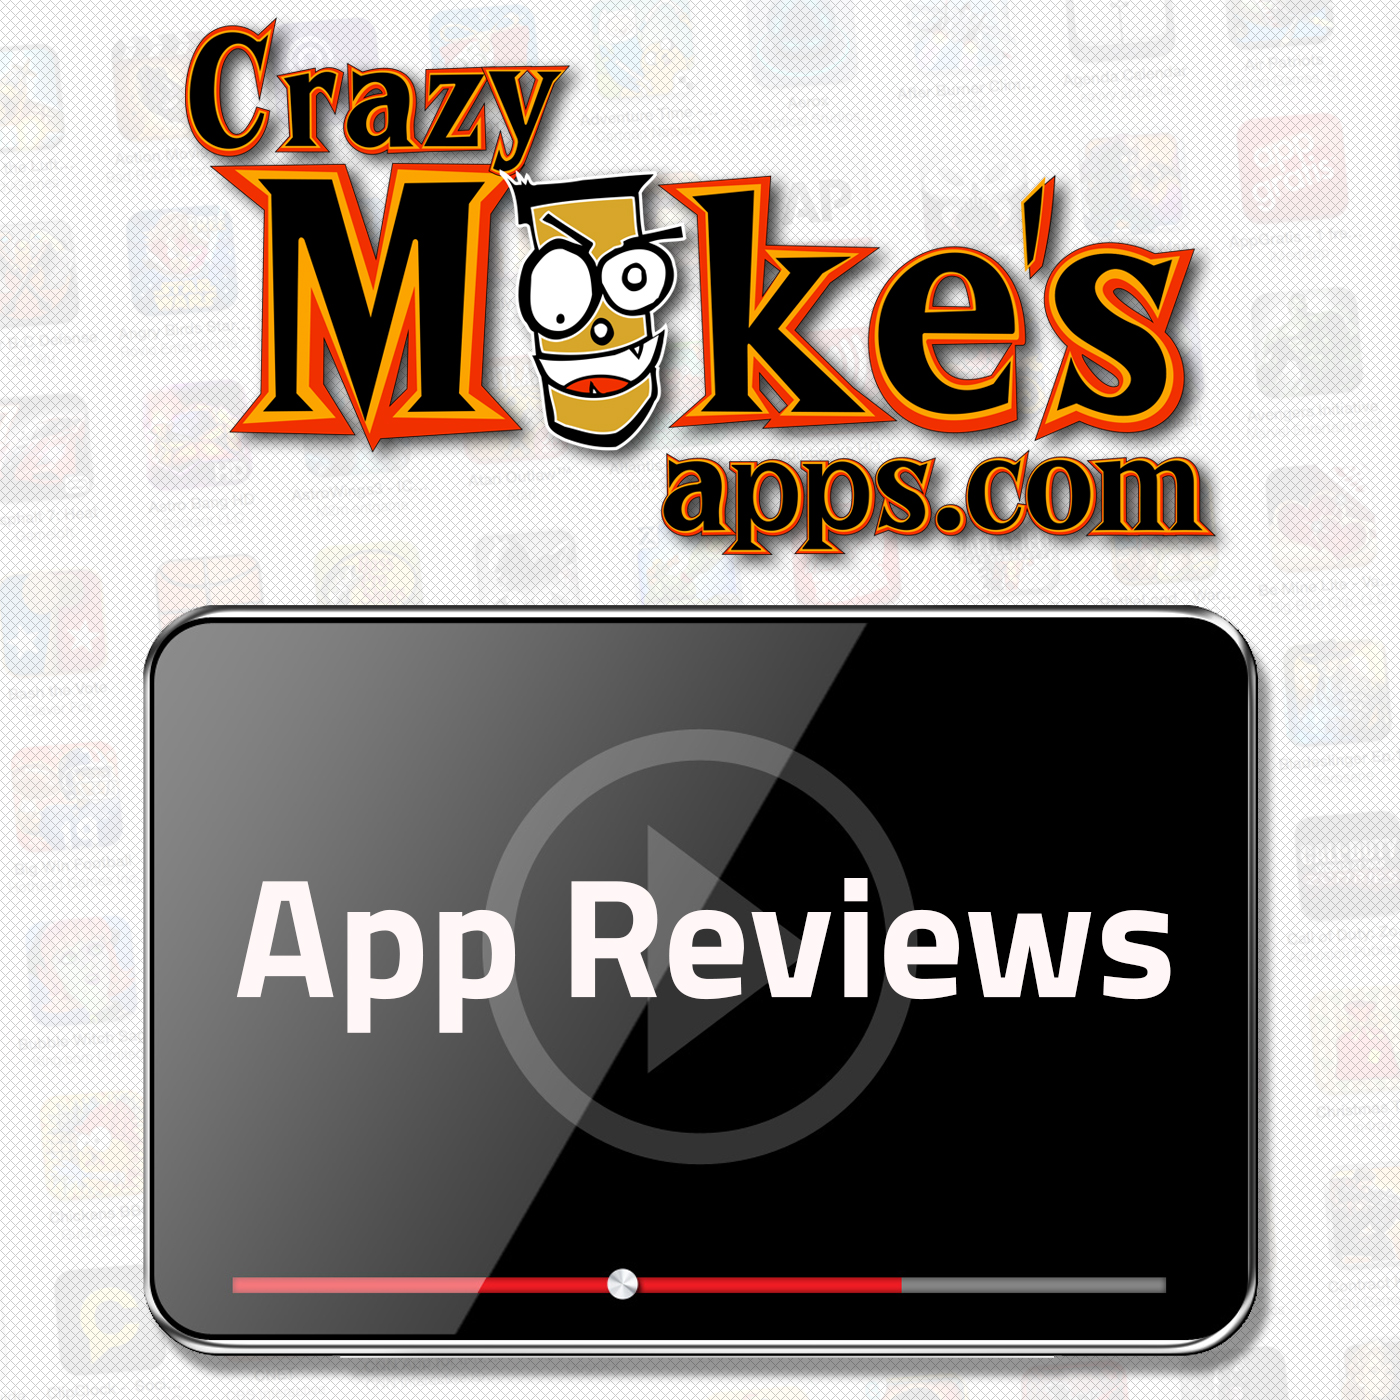 App Reviews for iPhone, iPad and Android Apps